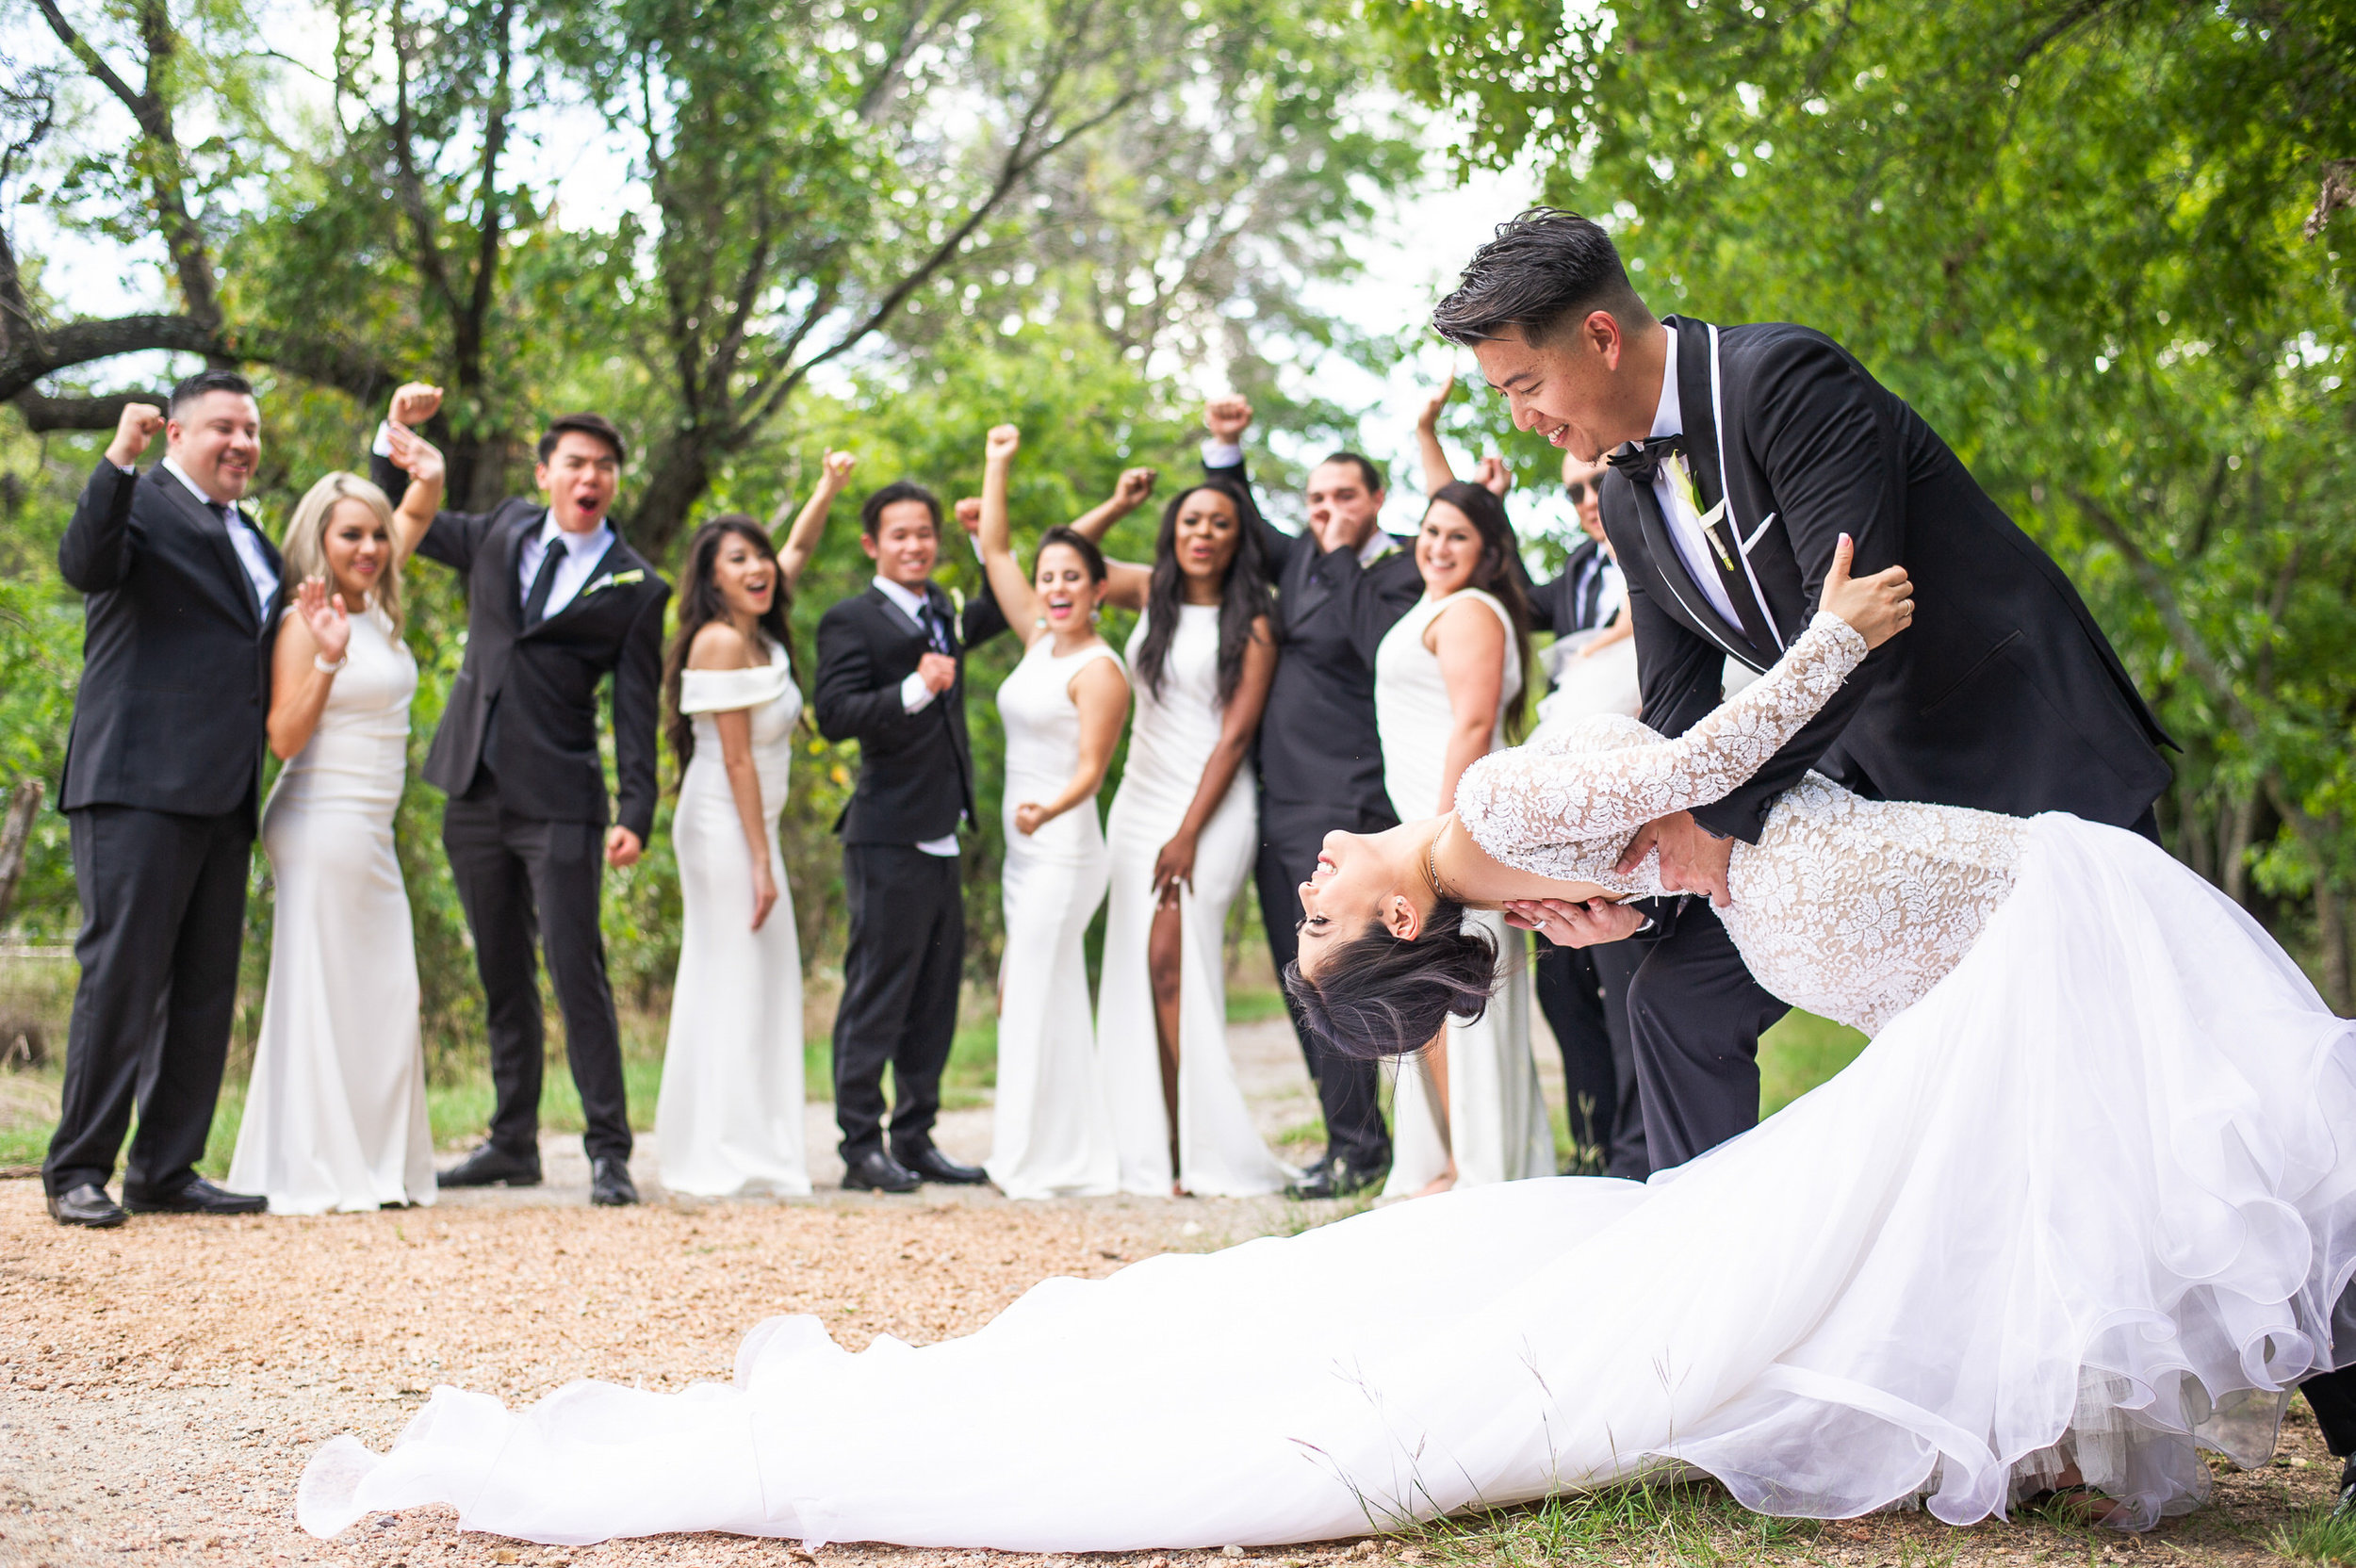 Joe_Pool_Lake_Bridal_Party-20826.jpg